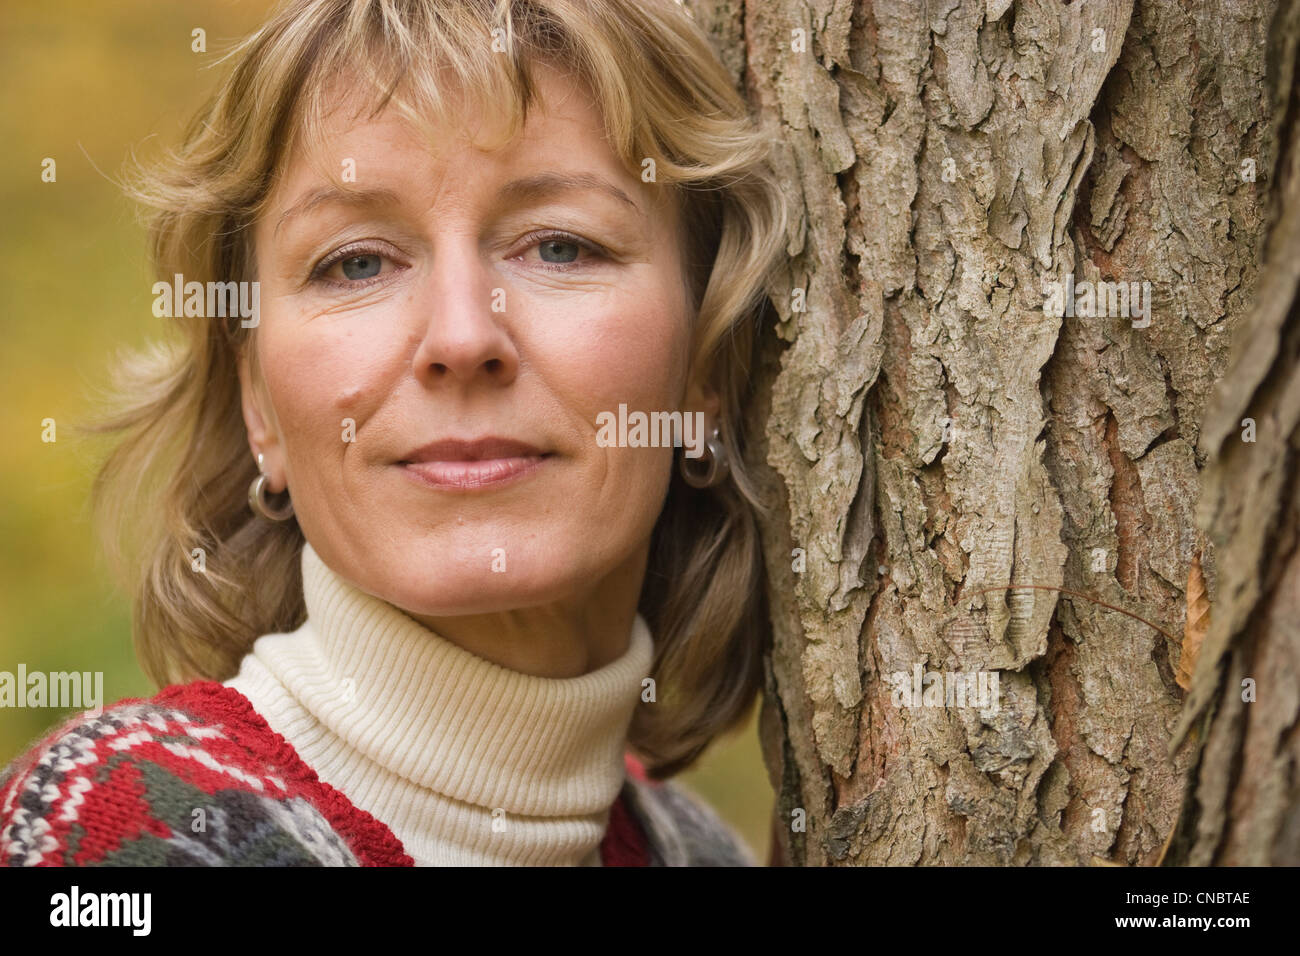 Portrait of a woman leaning against a tree - Stock Image